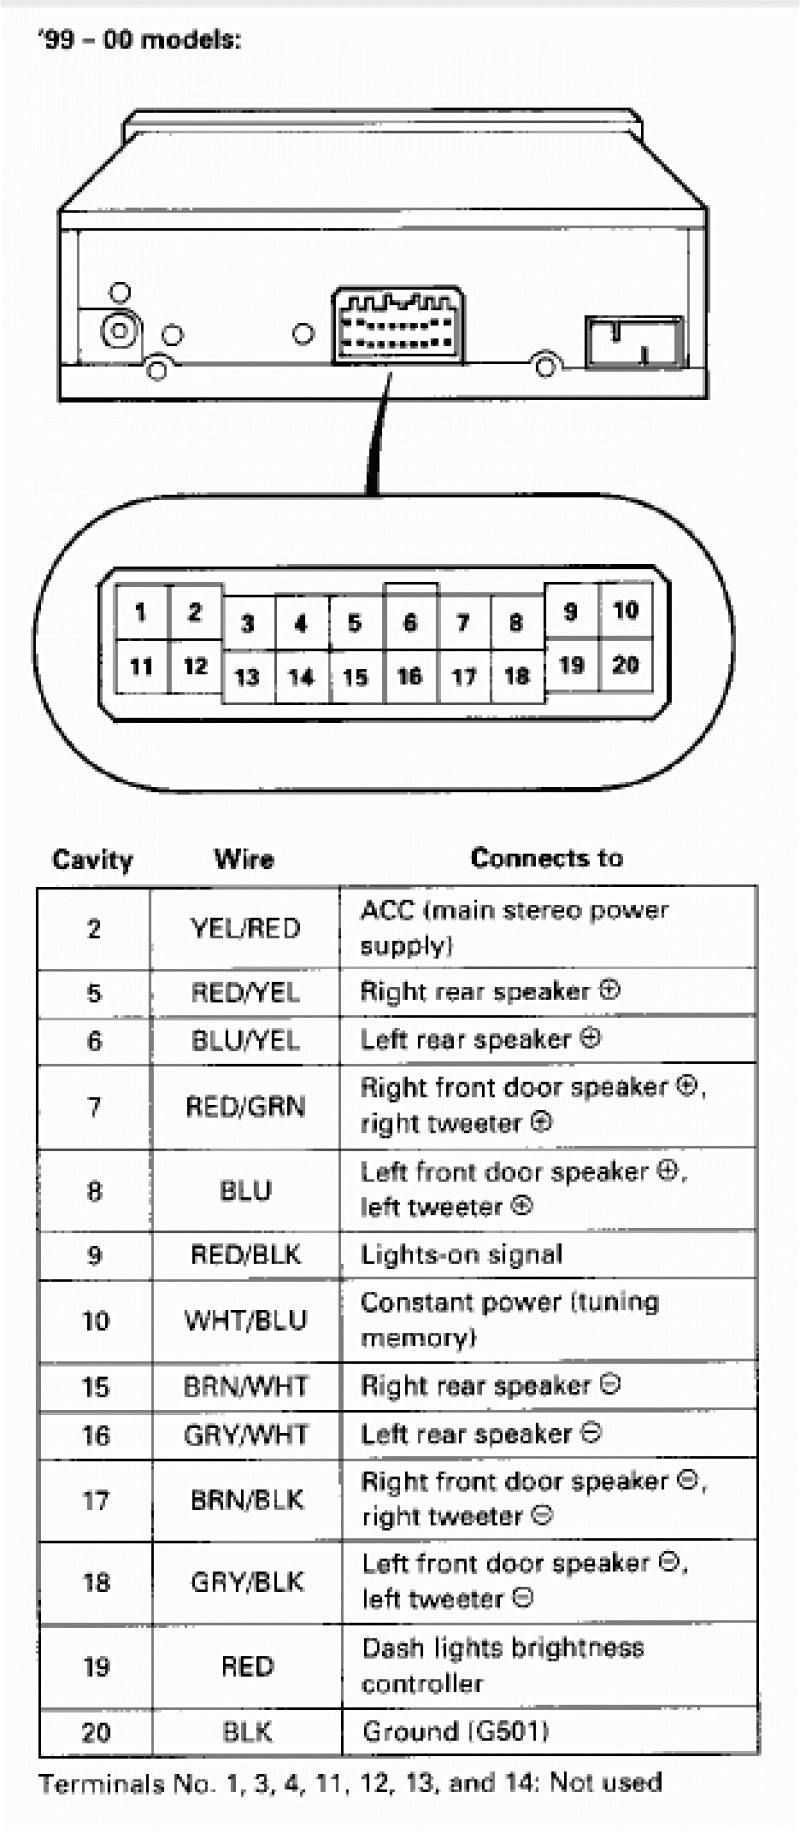 1995-honda-civic-radio-wiring-diagram-sevimliler-and.jpg (800×1833) | Civic  car, Honda civic car, Honda civicPinterest